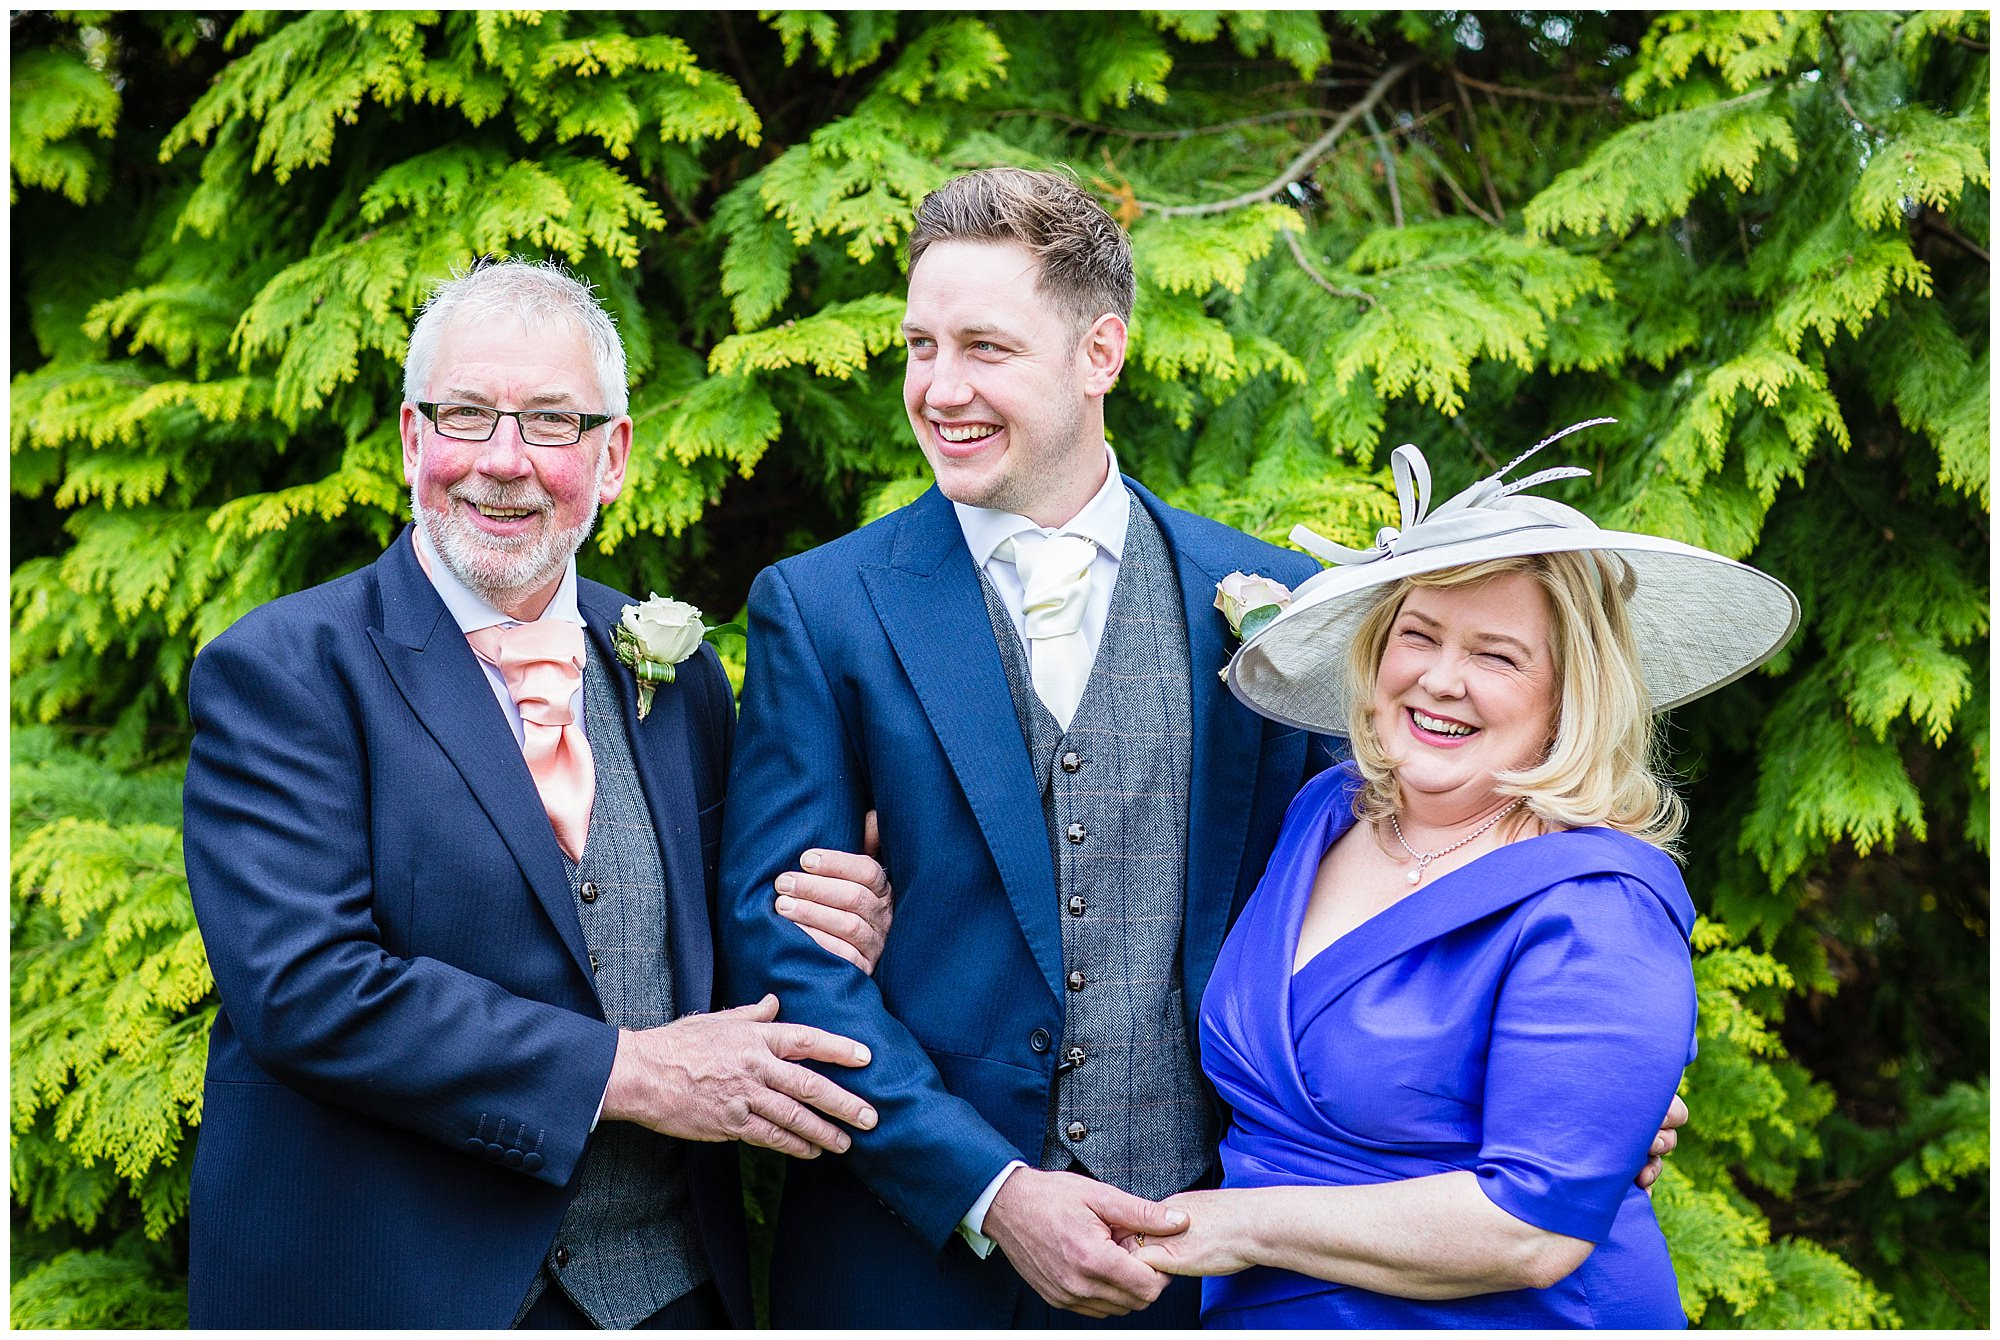 groom informal portrait with mum and dad - shropshire photographer